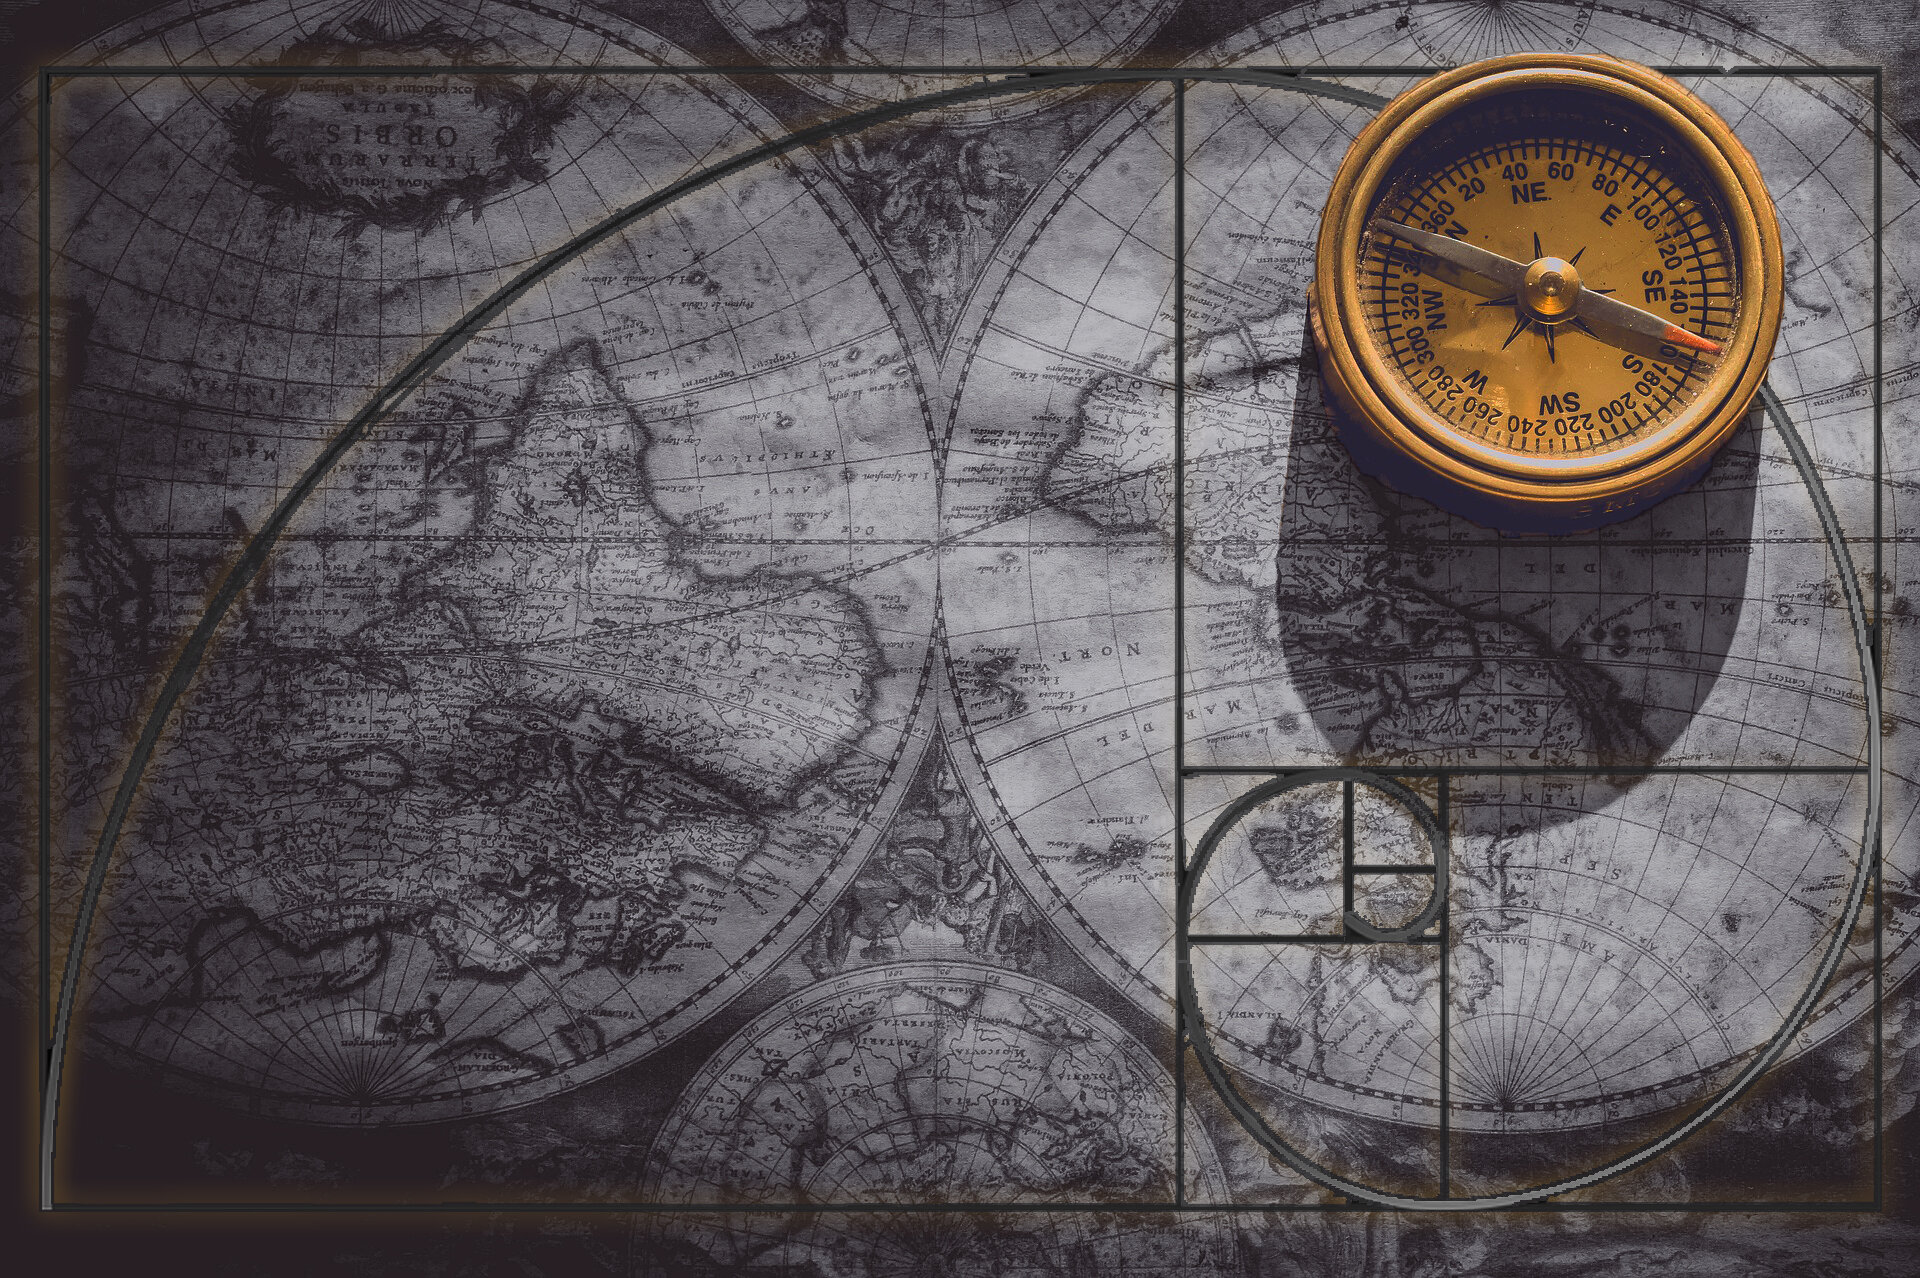 compass and map.jpg